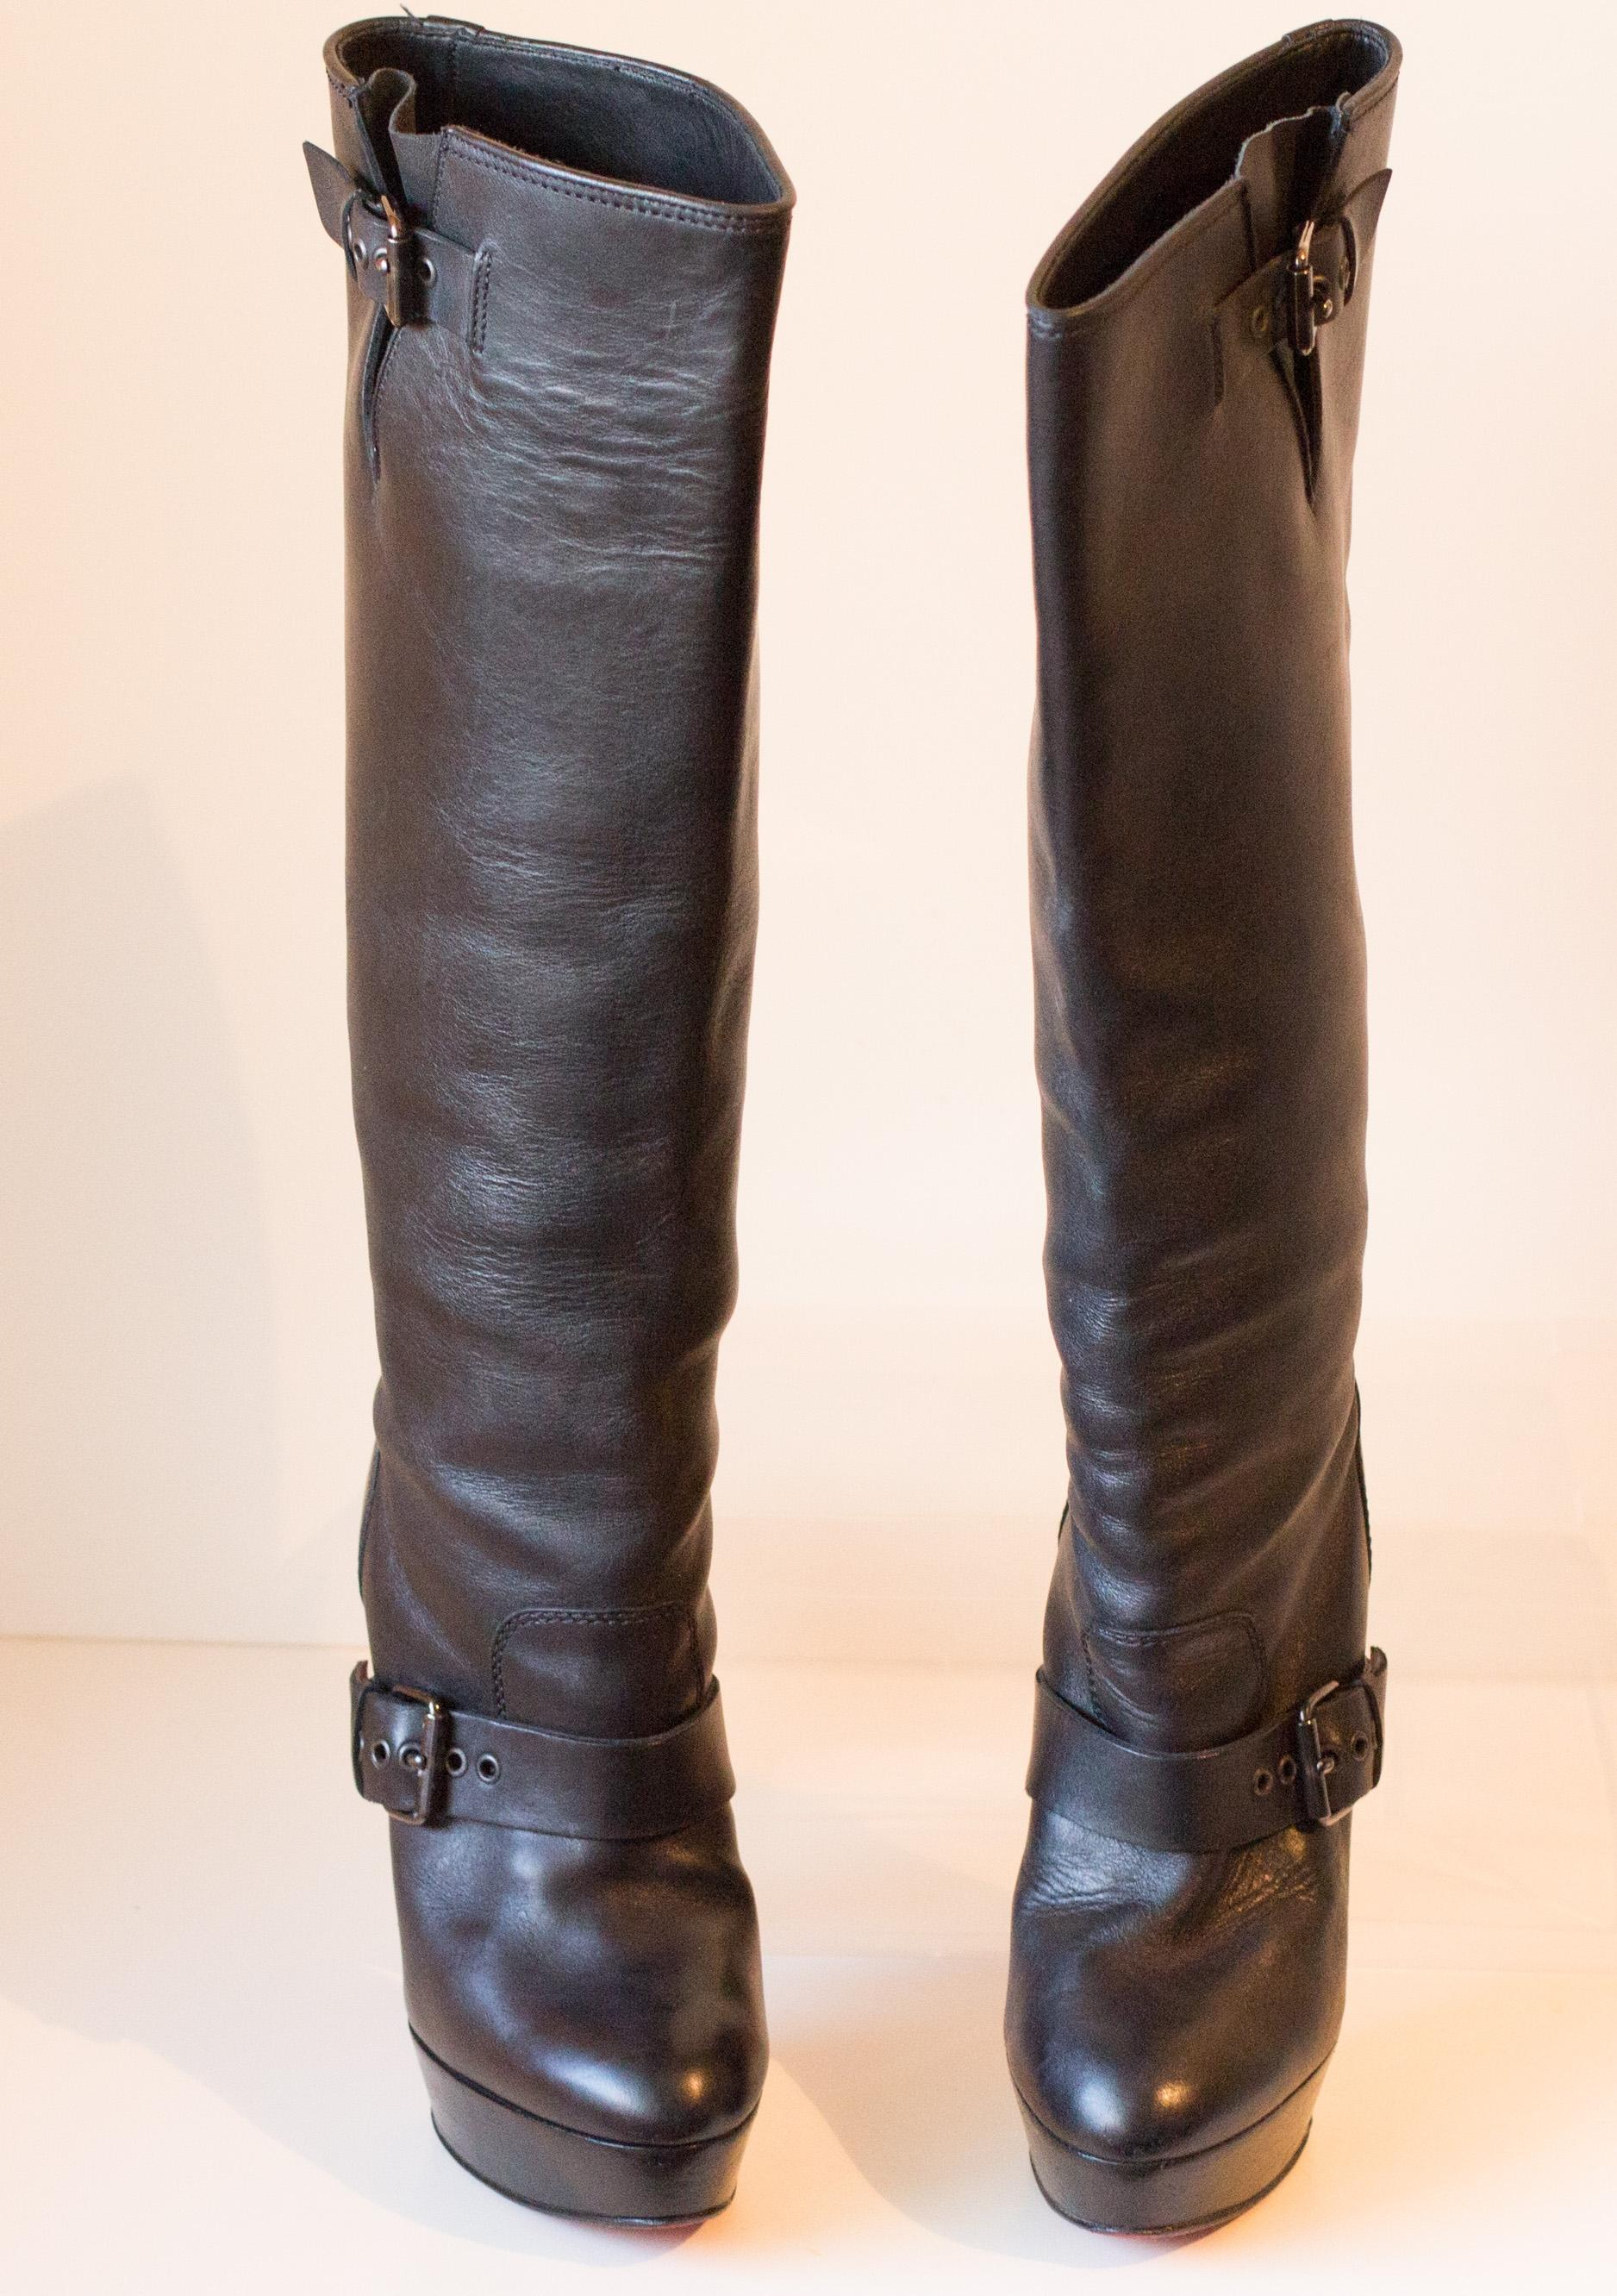 6cd096f13701 ... discount code for christian louboutin black harletty leather 37.5 boots  booties size us 6.5 regular m b